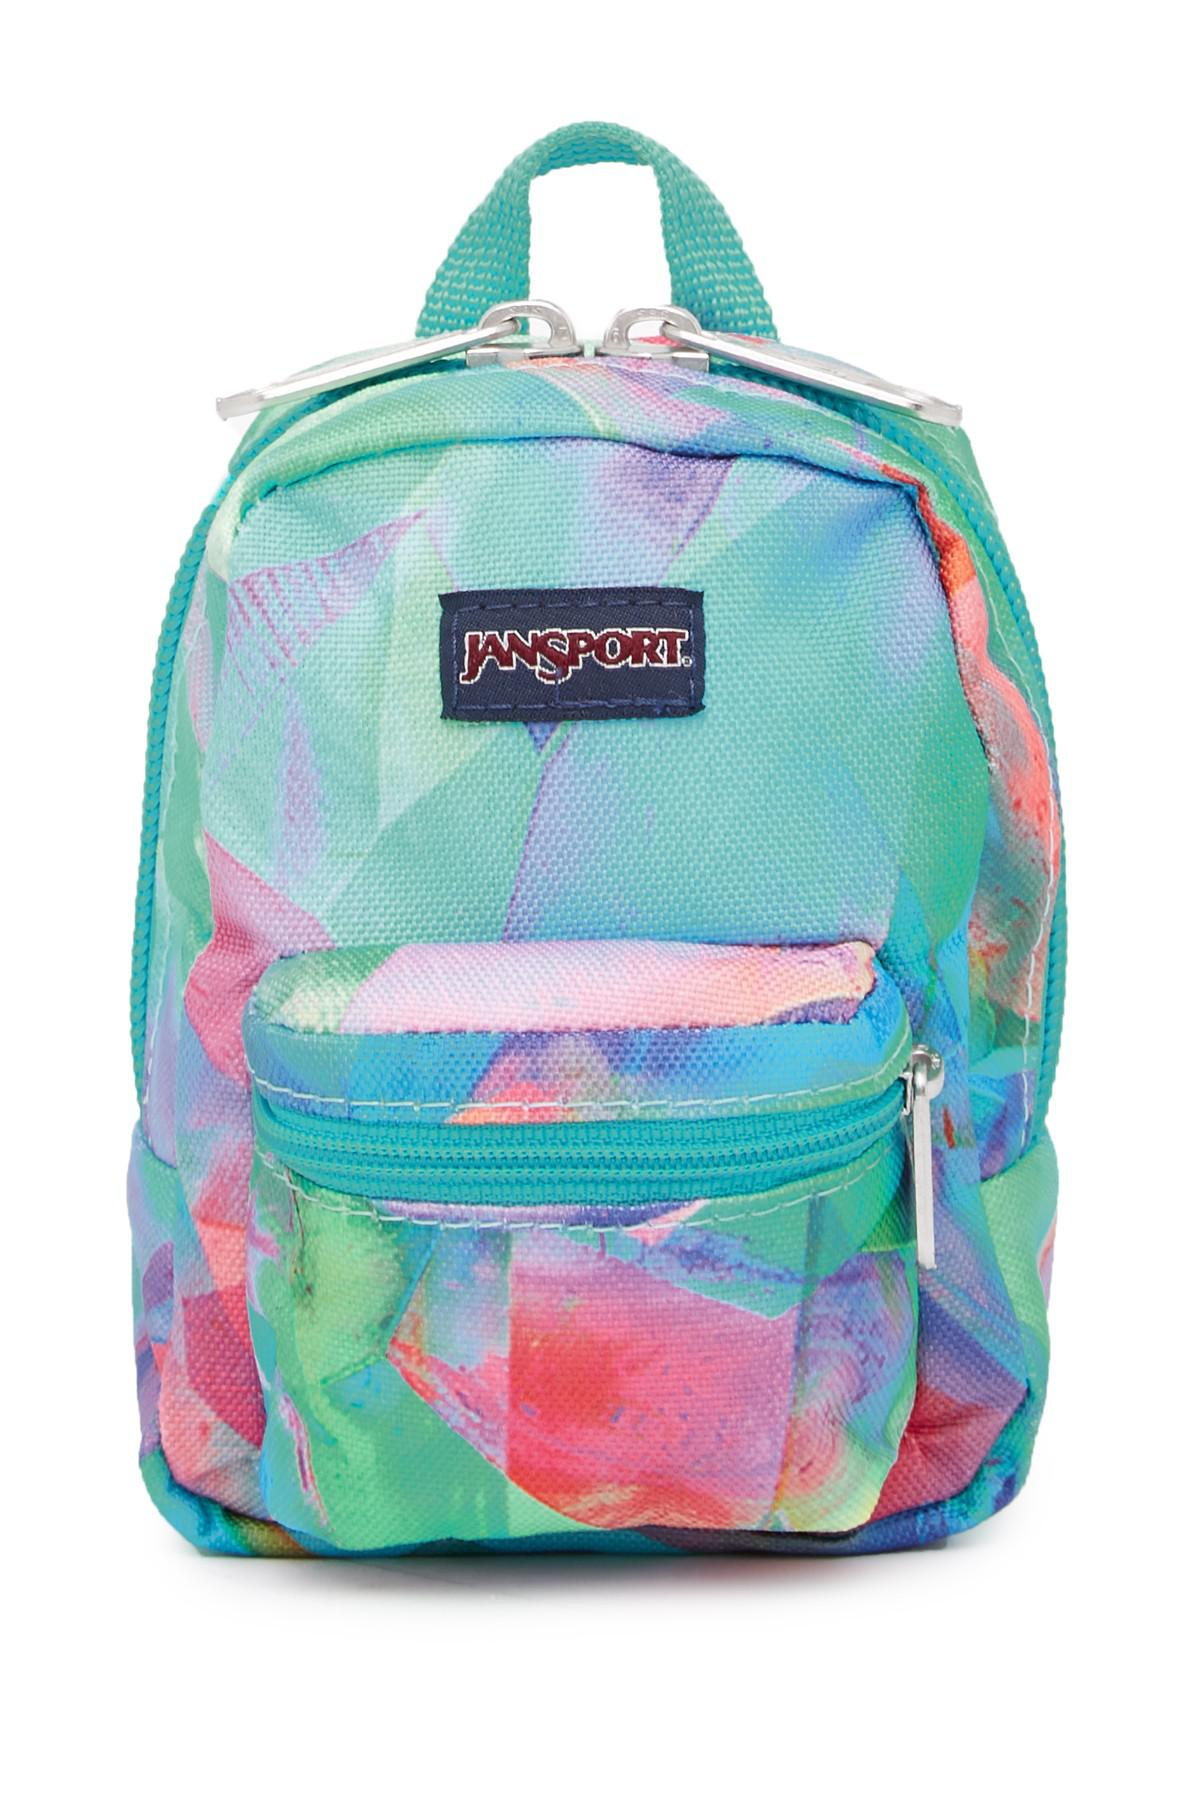 5804fbc1cd9c Jansport Rolling Backpack At Target- Fenix Toulouse Handball